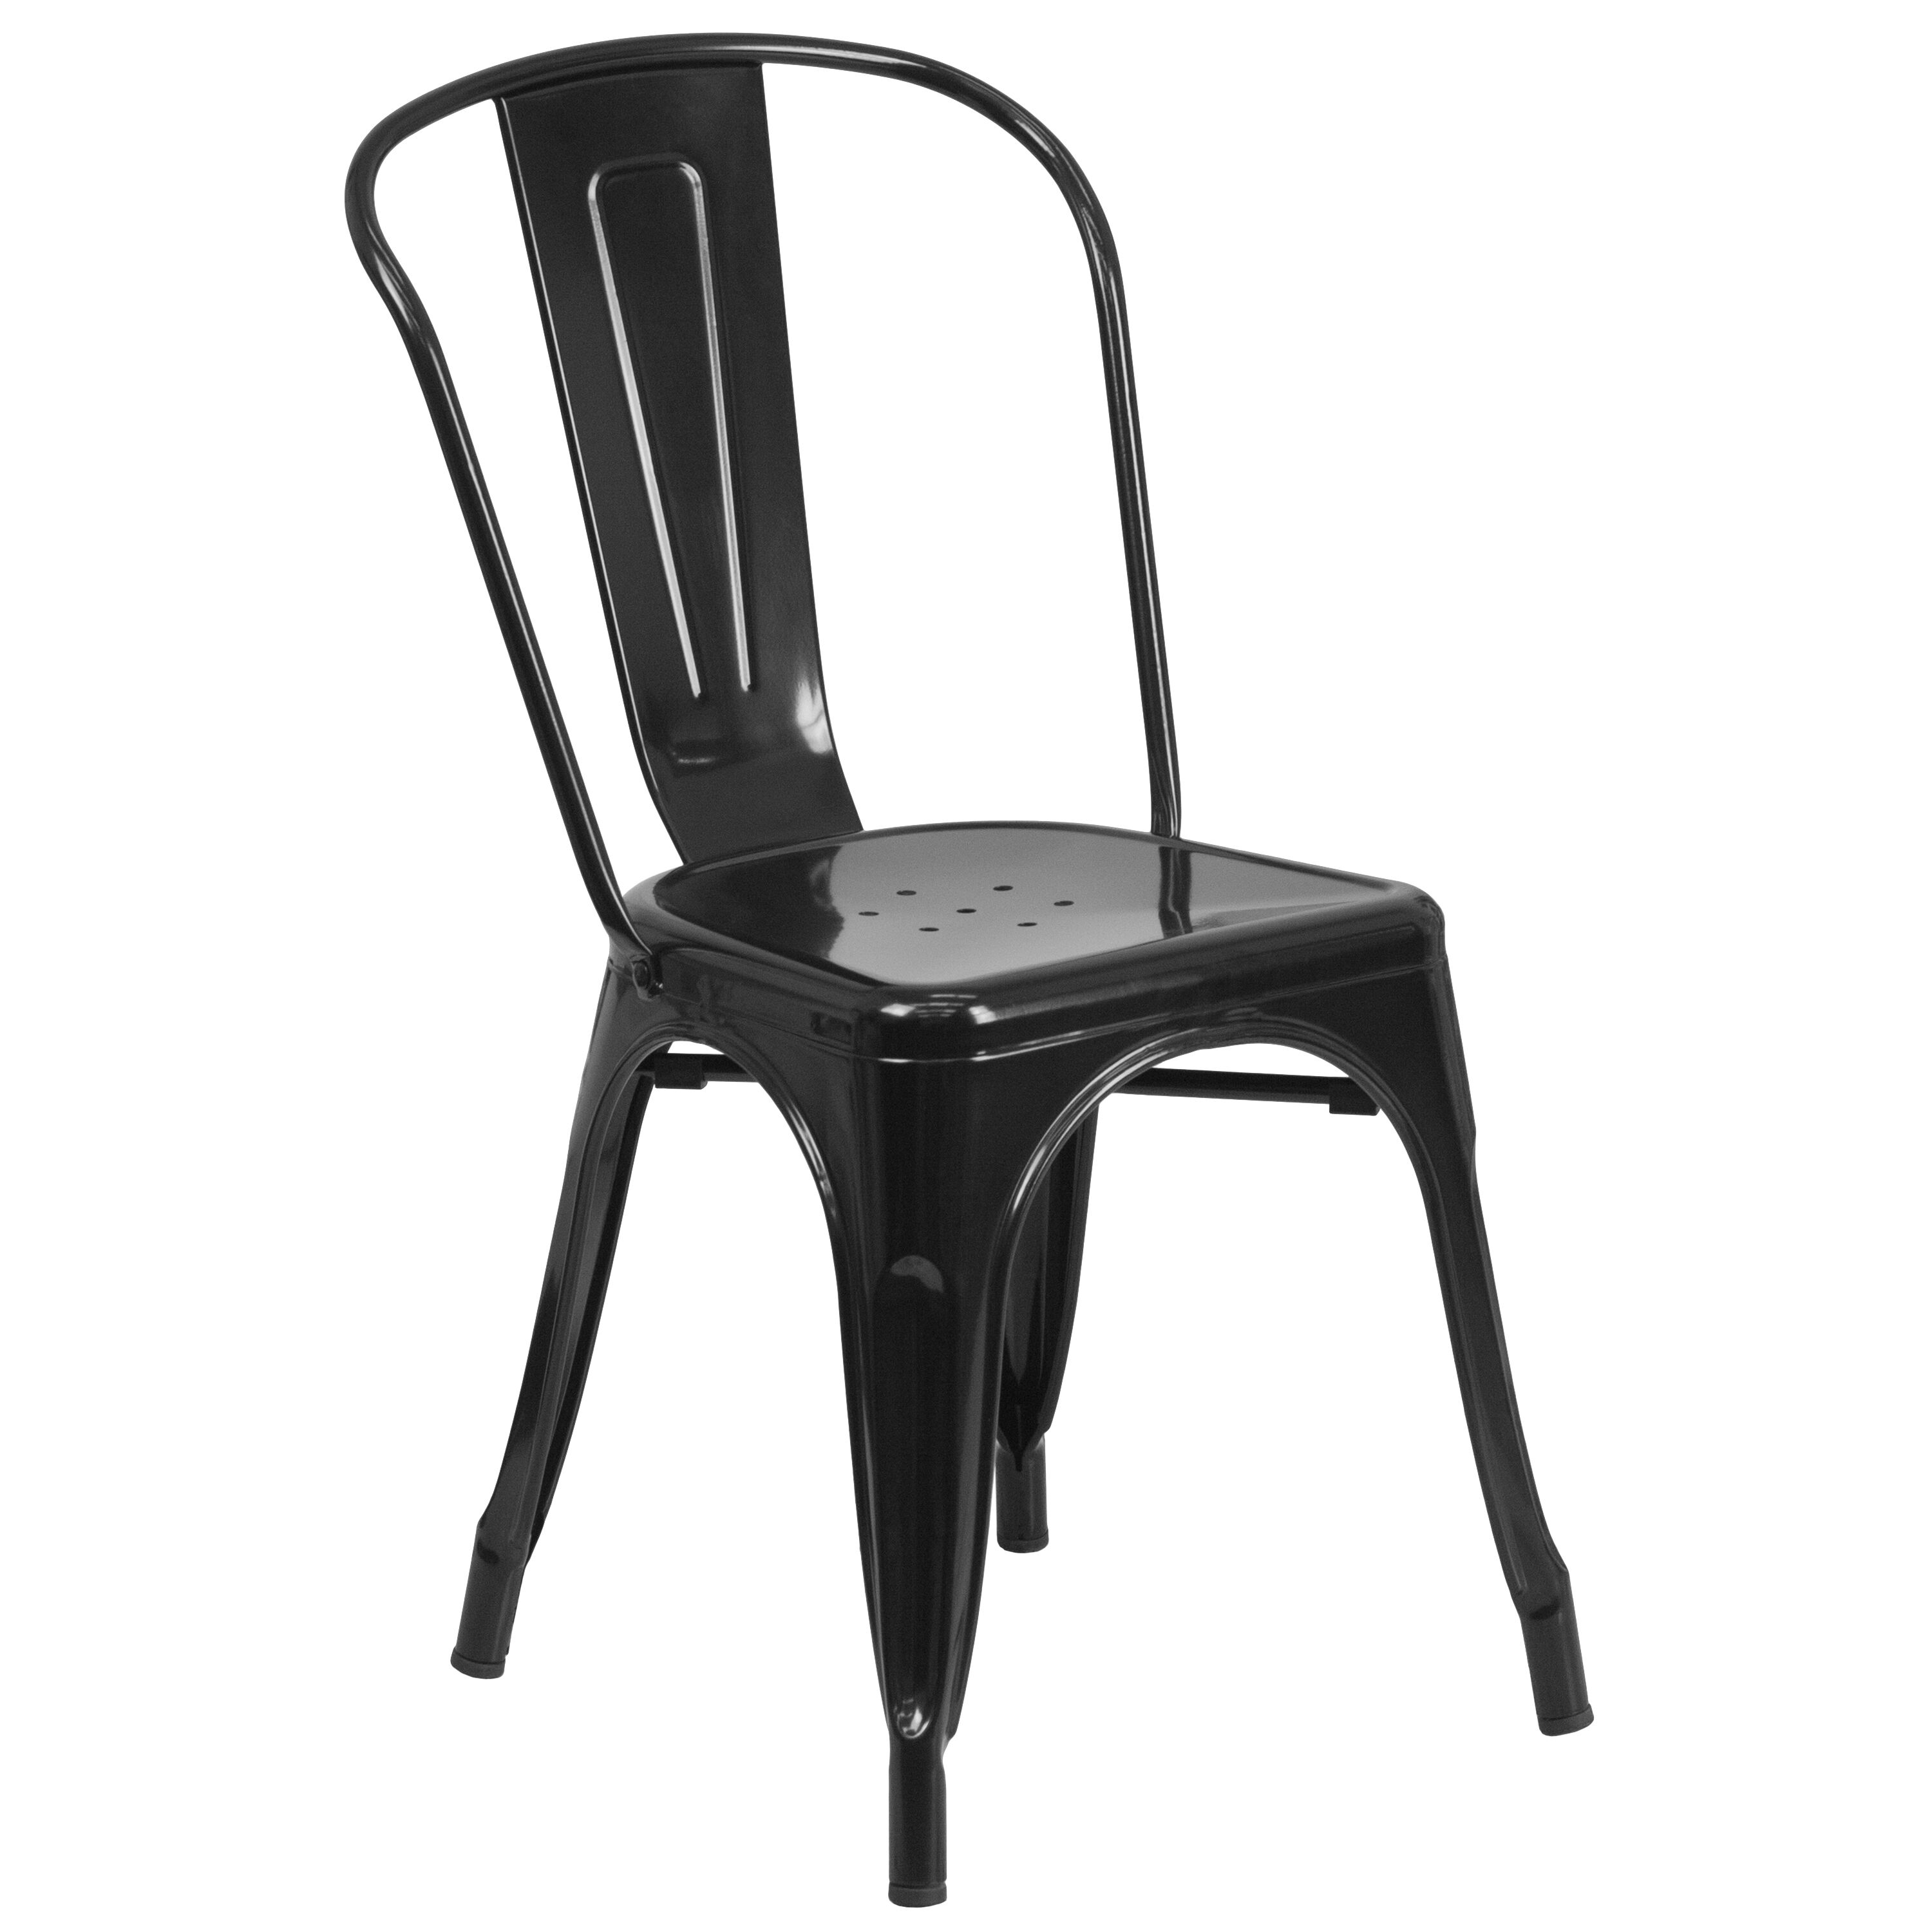 StackChairs4Less Quality Discount Furniture for Your Home and